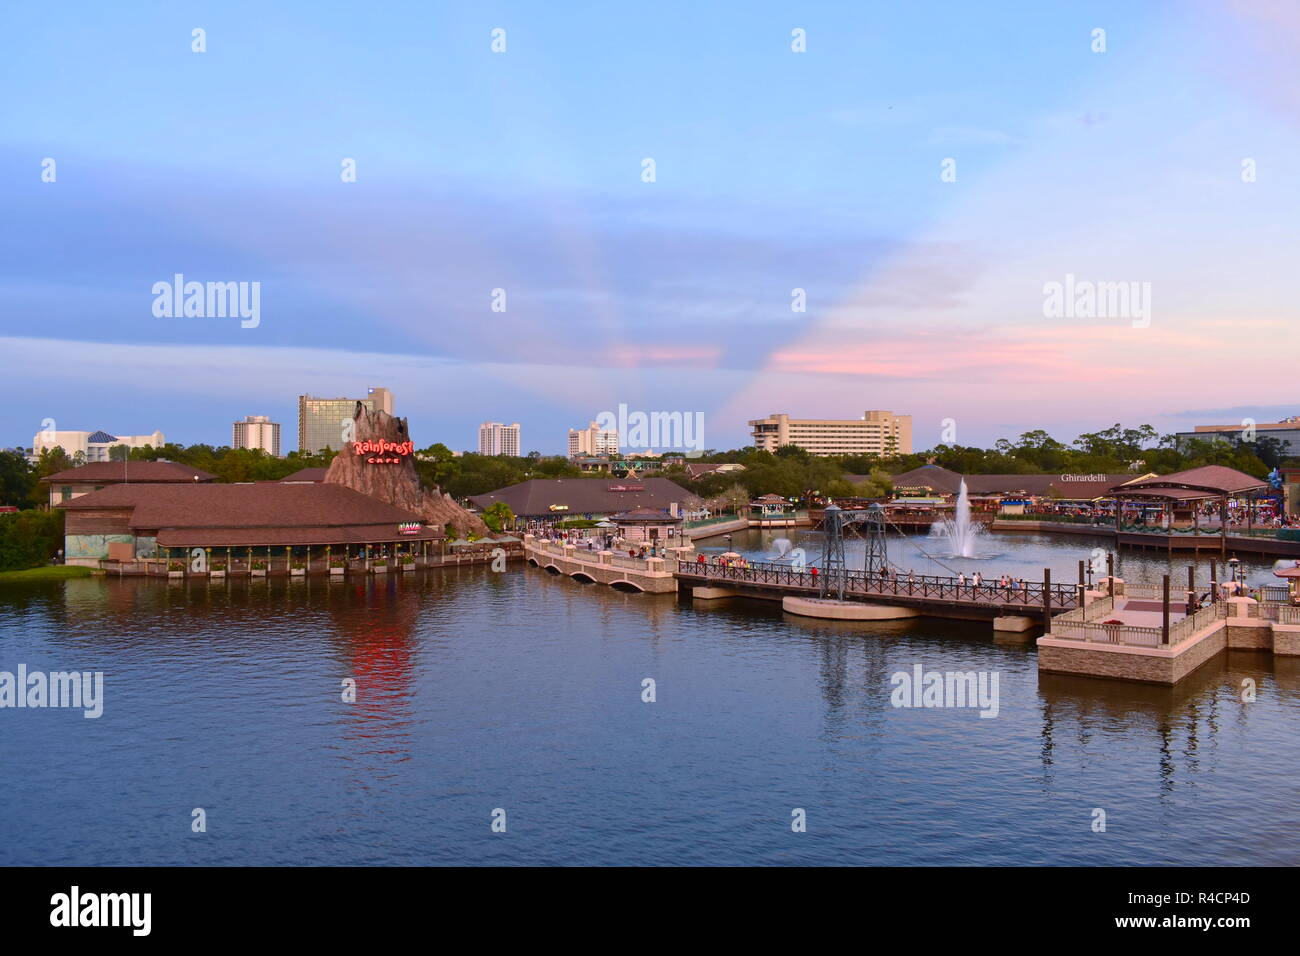 Orlando, Florida. November 18, 2018 Panoramic view of Volcano, vintage bridge , hotels and outside market on sunset with magenta rays at Disney Spring - Stock Image